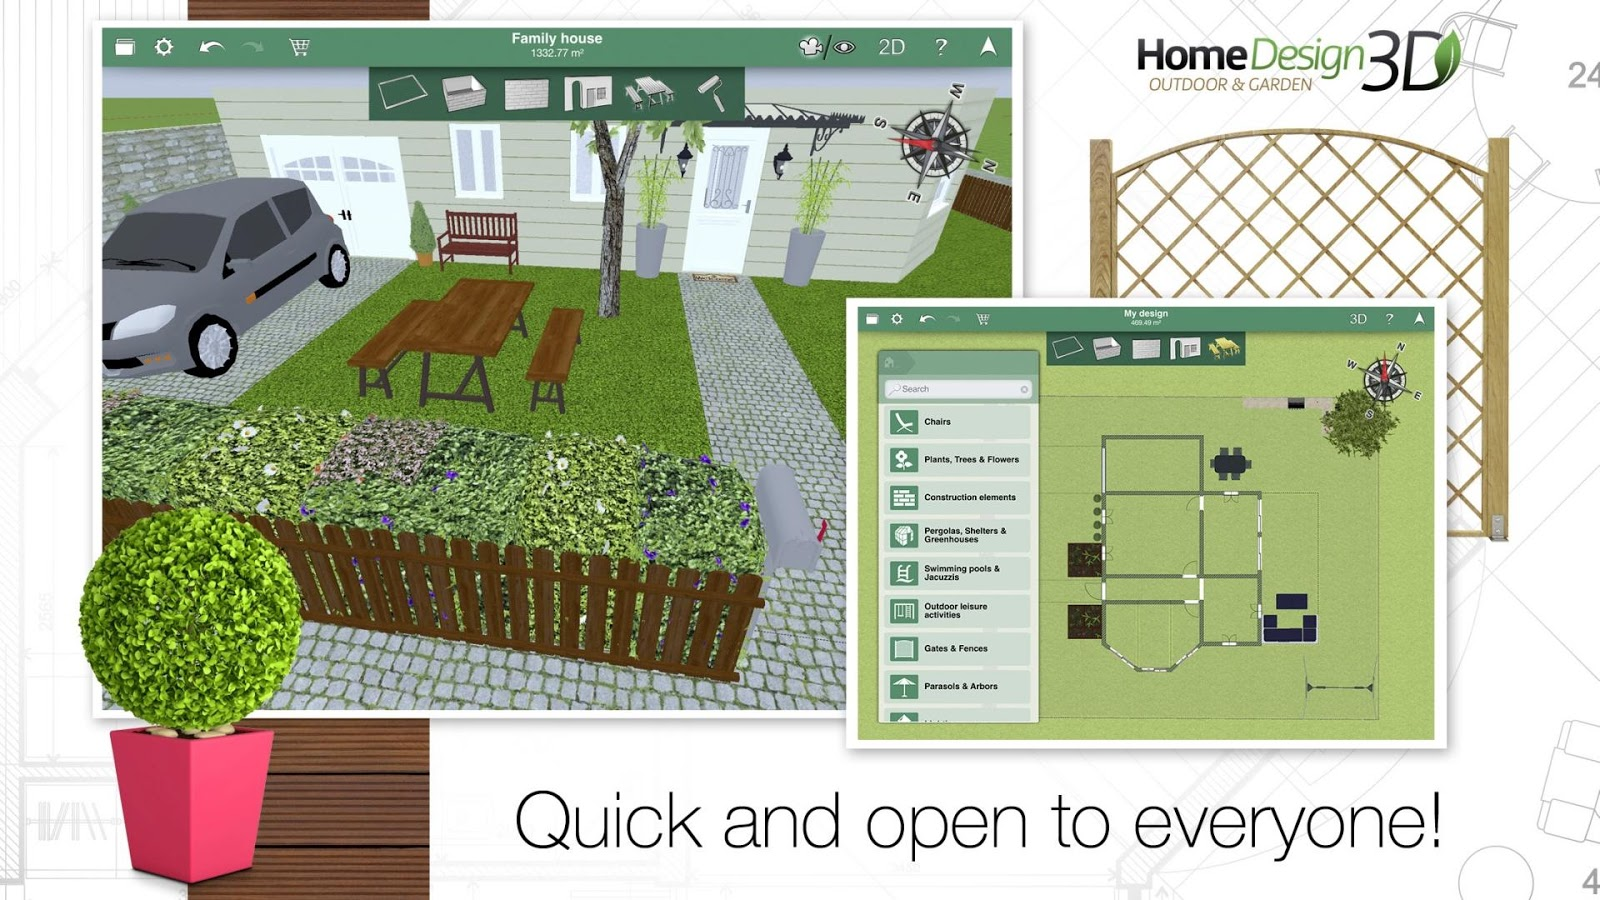 Home Design 3D Outdoor Garden Slides Into The Play Store For All Your Deck P